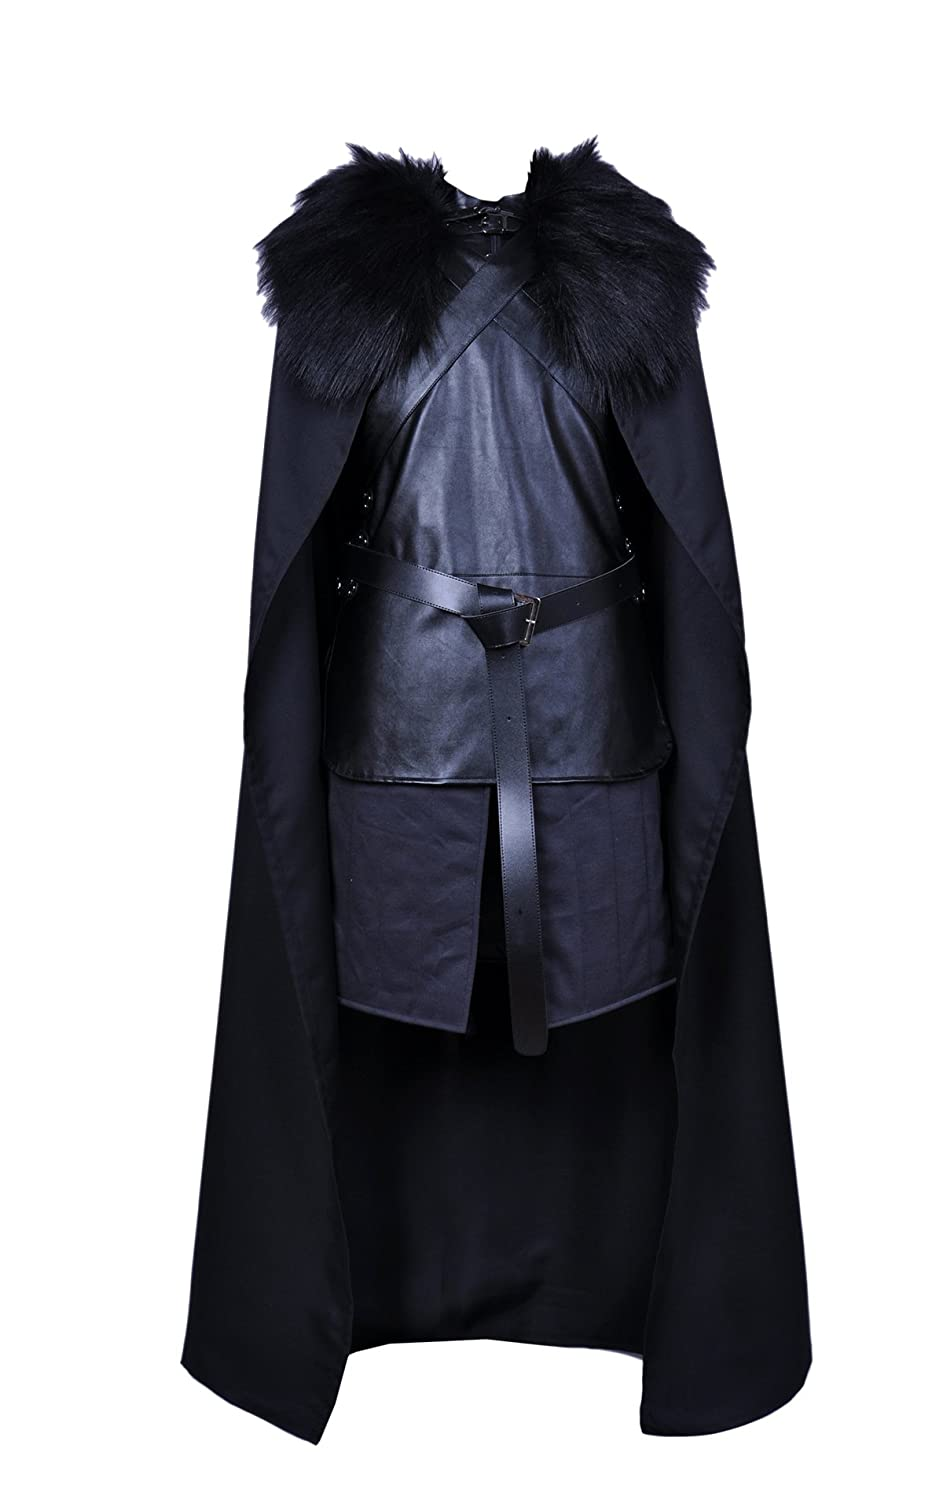 Knights Watch Cosplay Costume for Man and Child